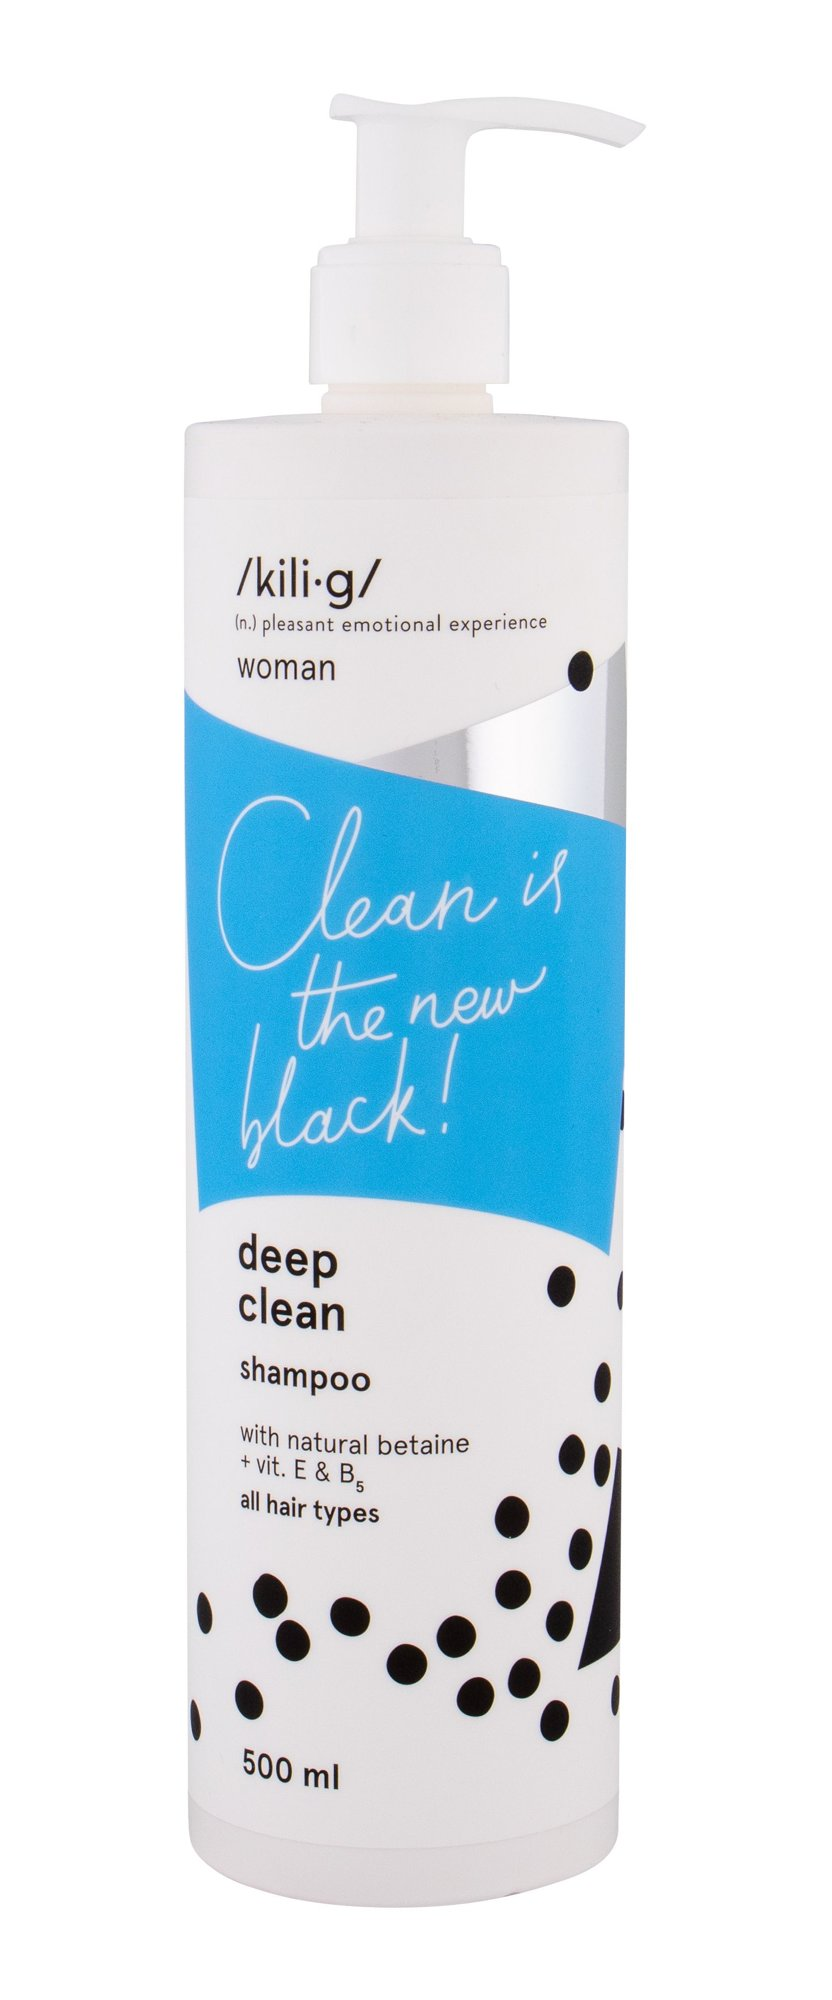 kili·g woman deep clean Shampoo 500ml